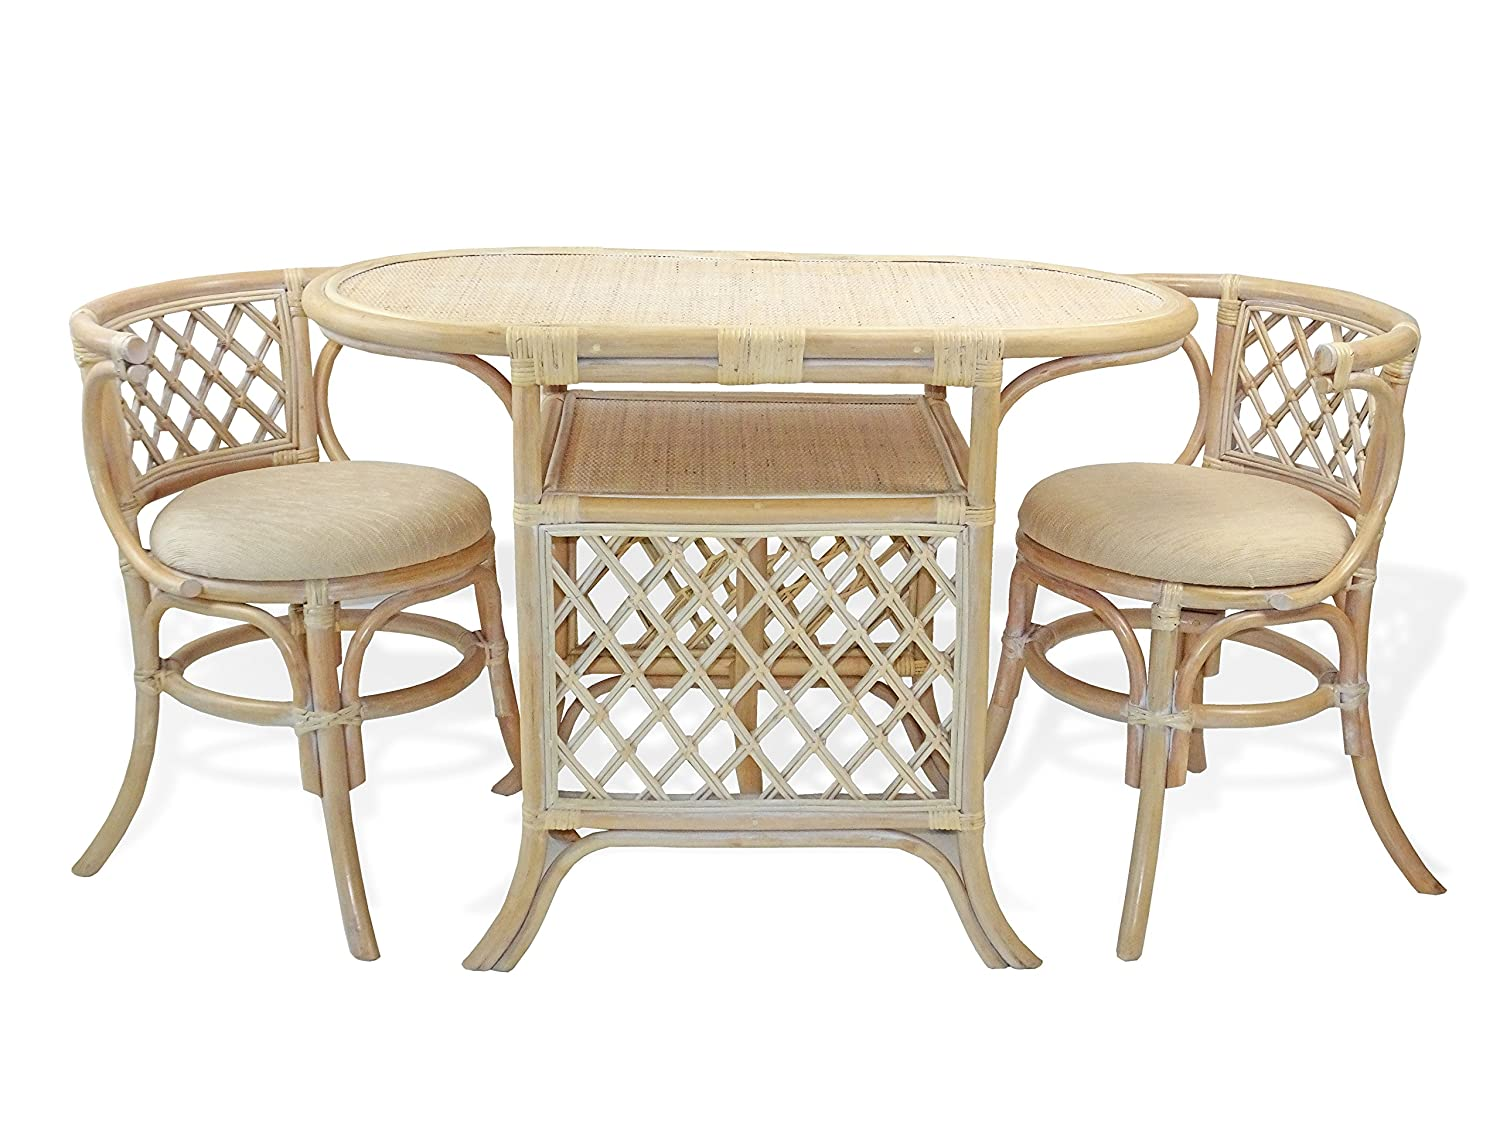 Amazon.com - Borneo Compact Dining SET Table with Wicker Top +2 ...